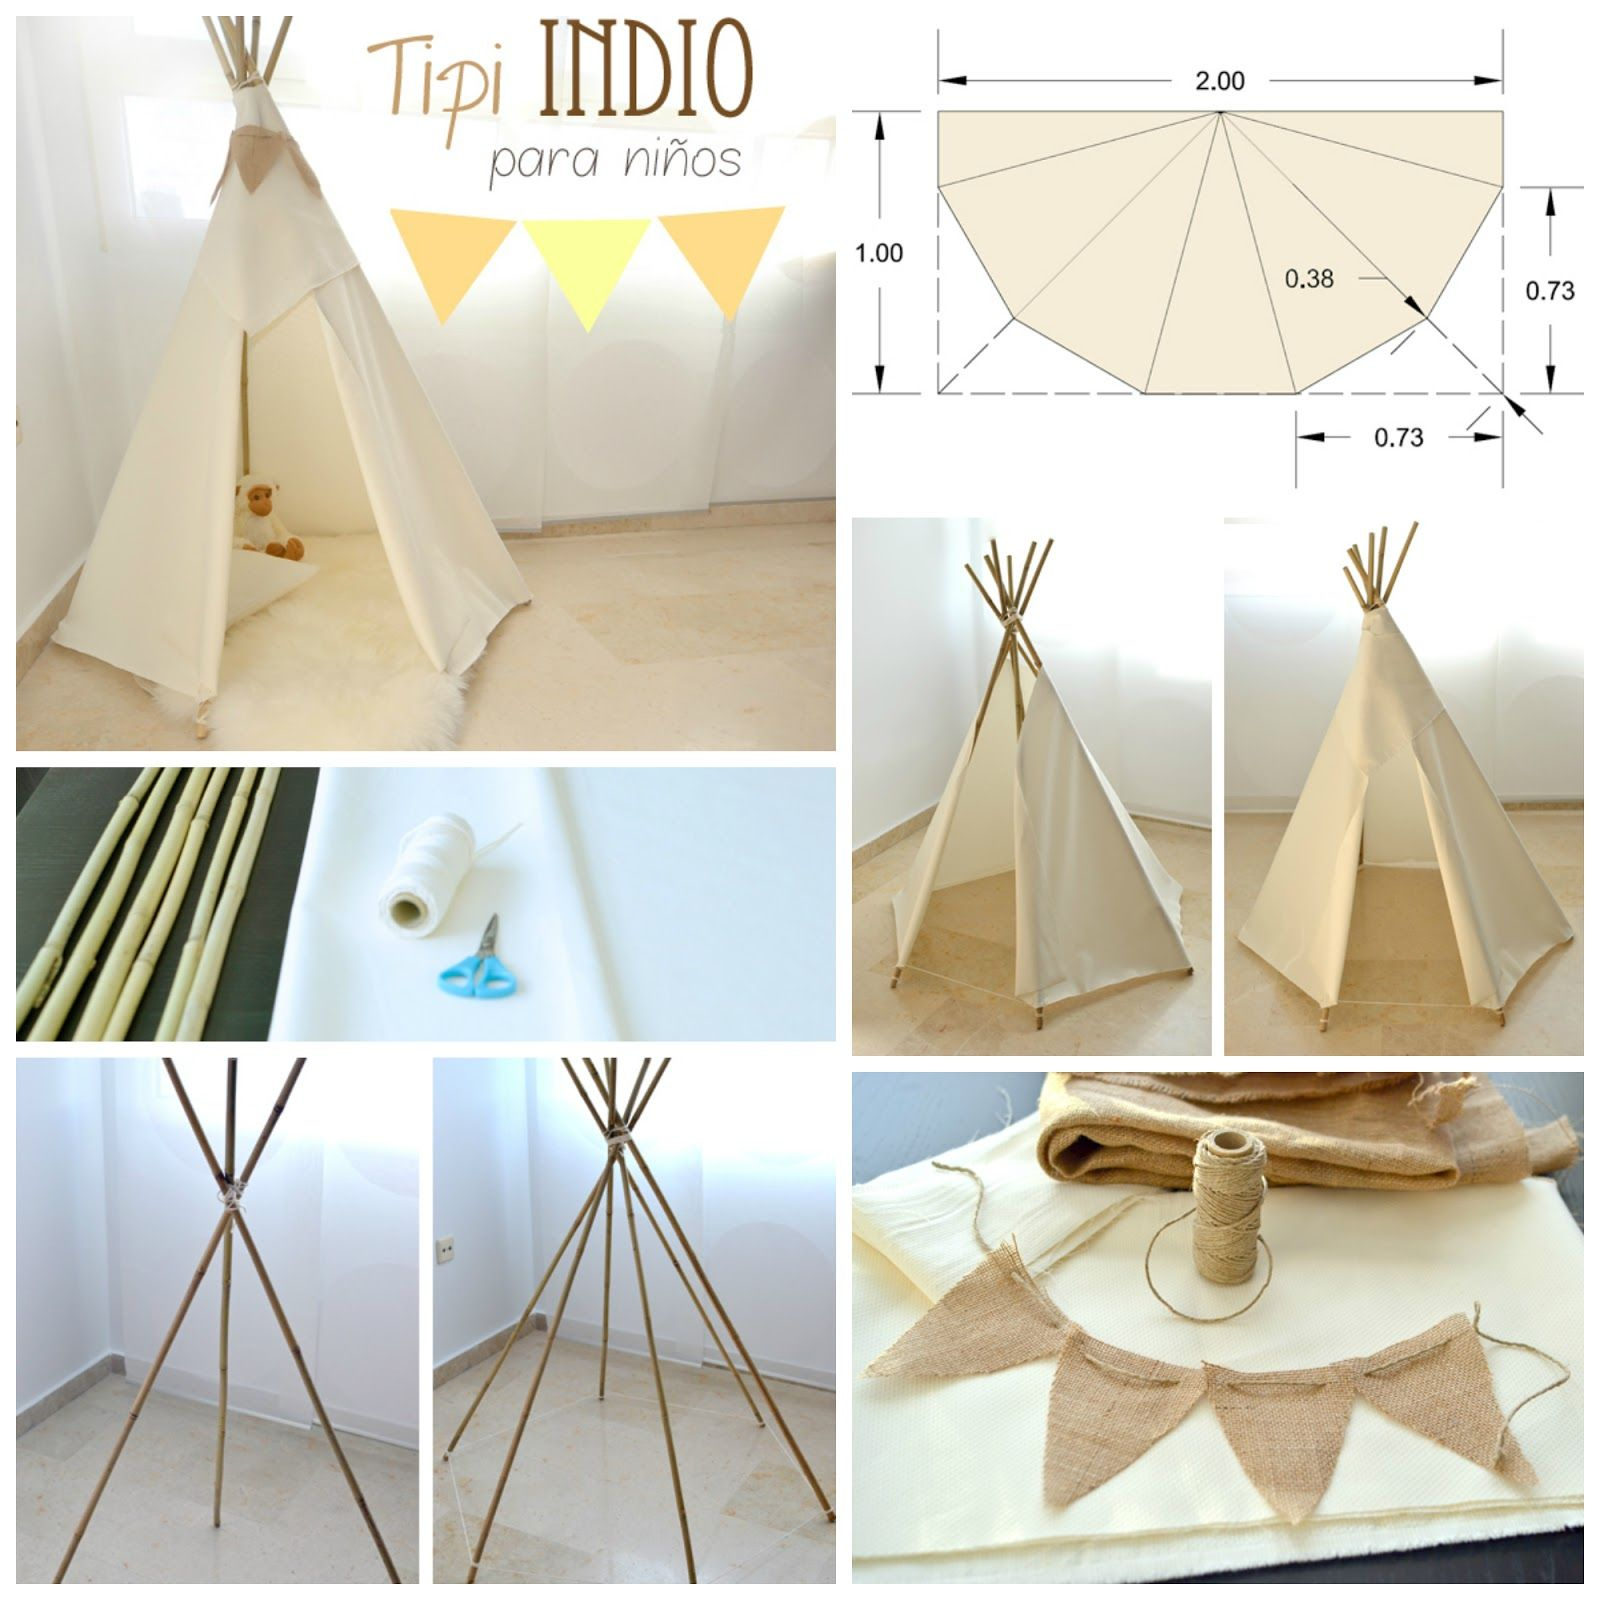 blanco y de madera casa patio pinterest kinderzimmer tipi bauen und zelte. Black Bedroom Furniture Sets. Home Design Ideas